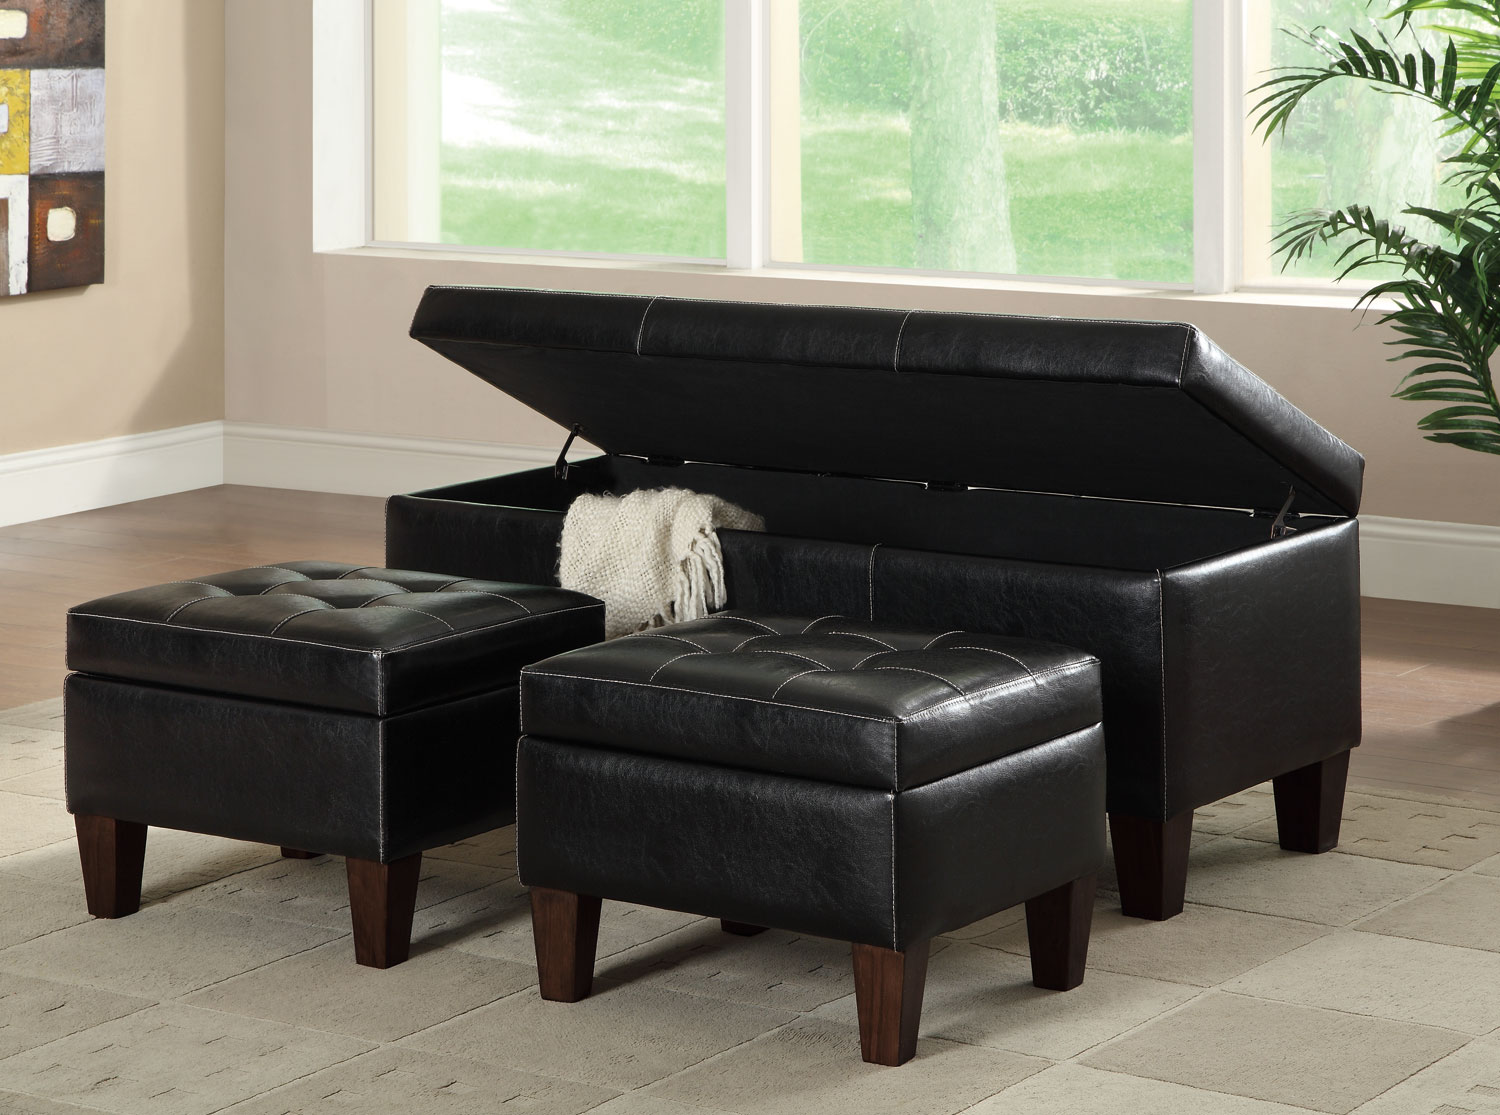 Groovy 3 Piece Faux Leather Storage Bench Set Ncnpc Chair Design For Home Ncnpcorg